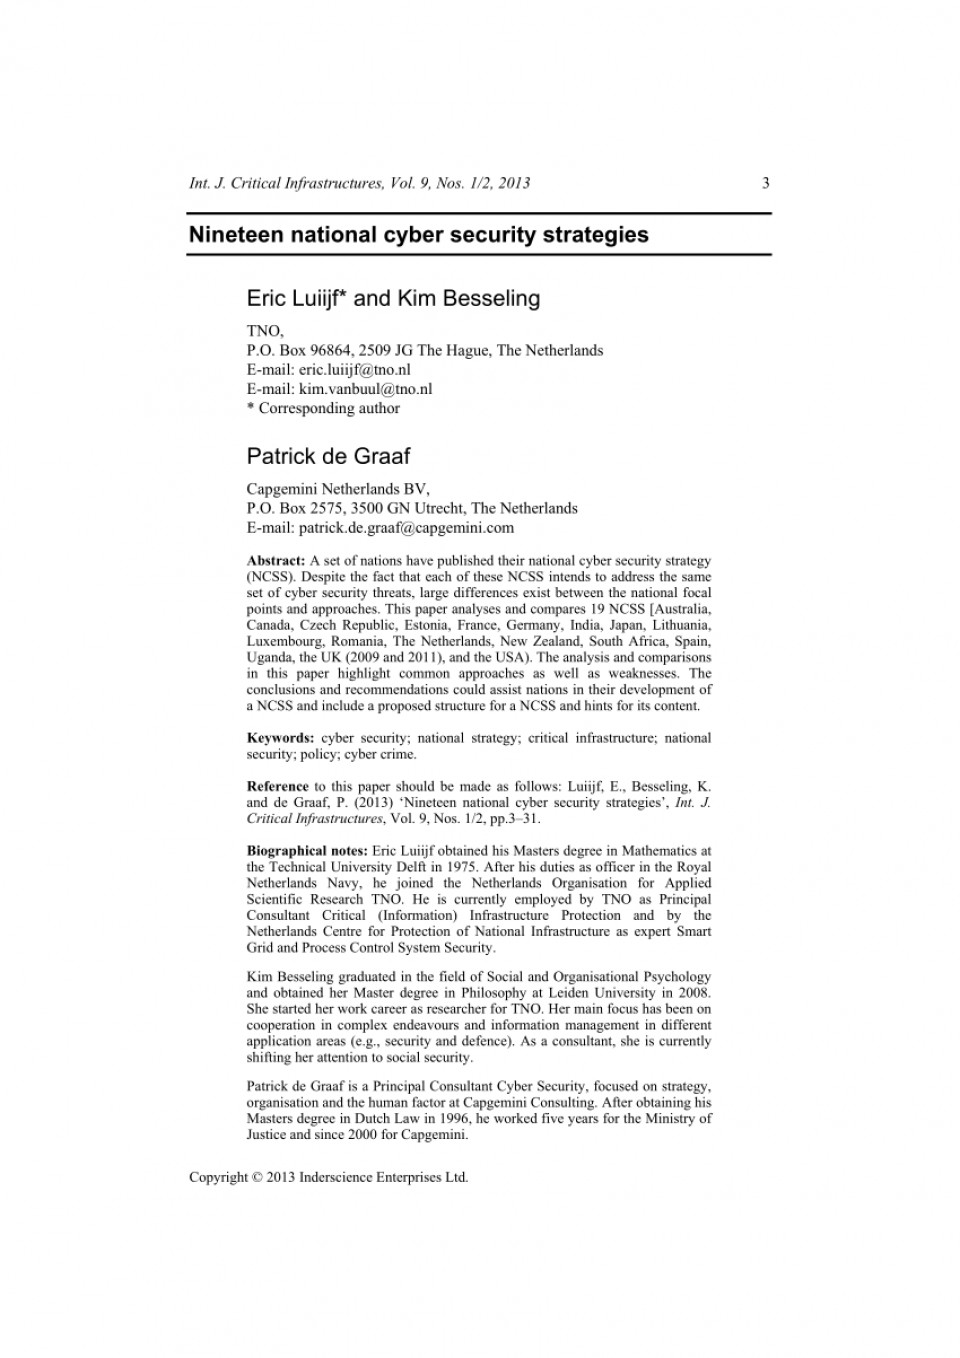 019 Cyber Security Research Paper Dreaded 2019 Papers 2018 960